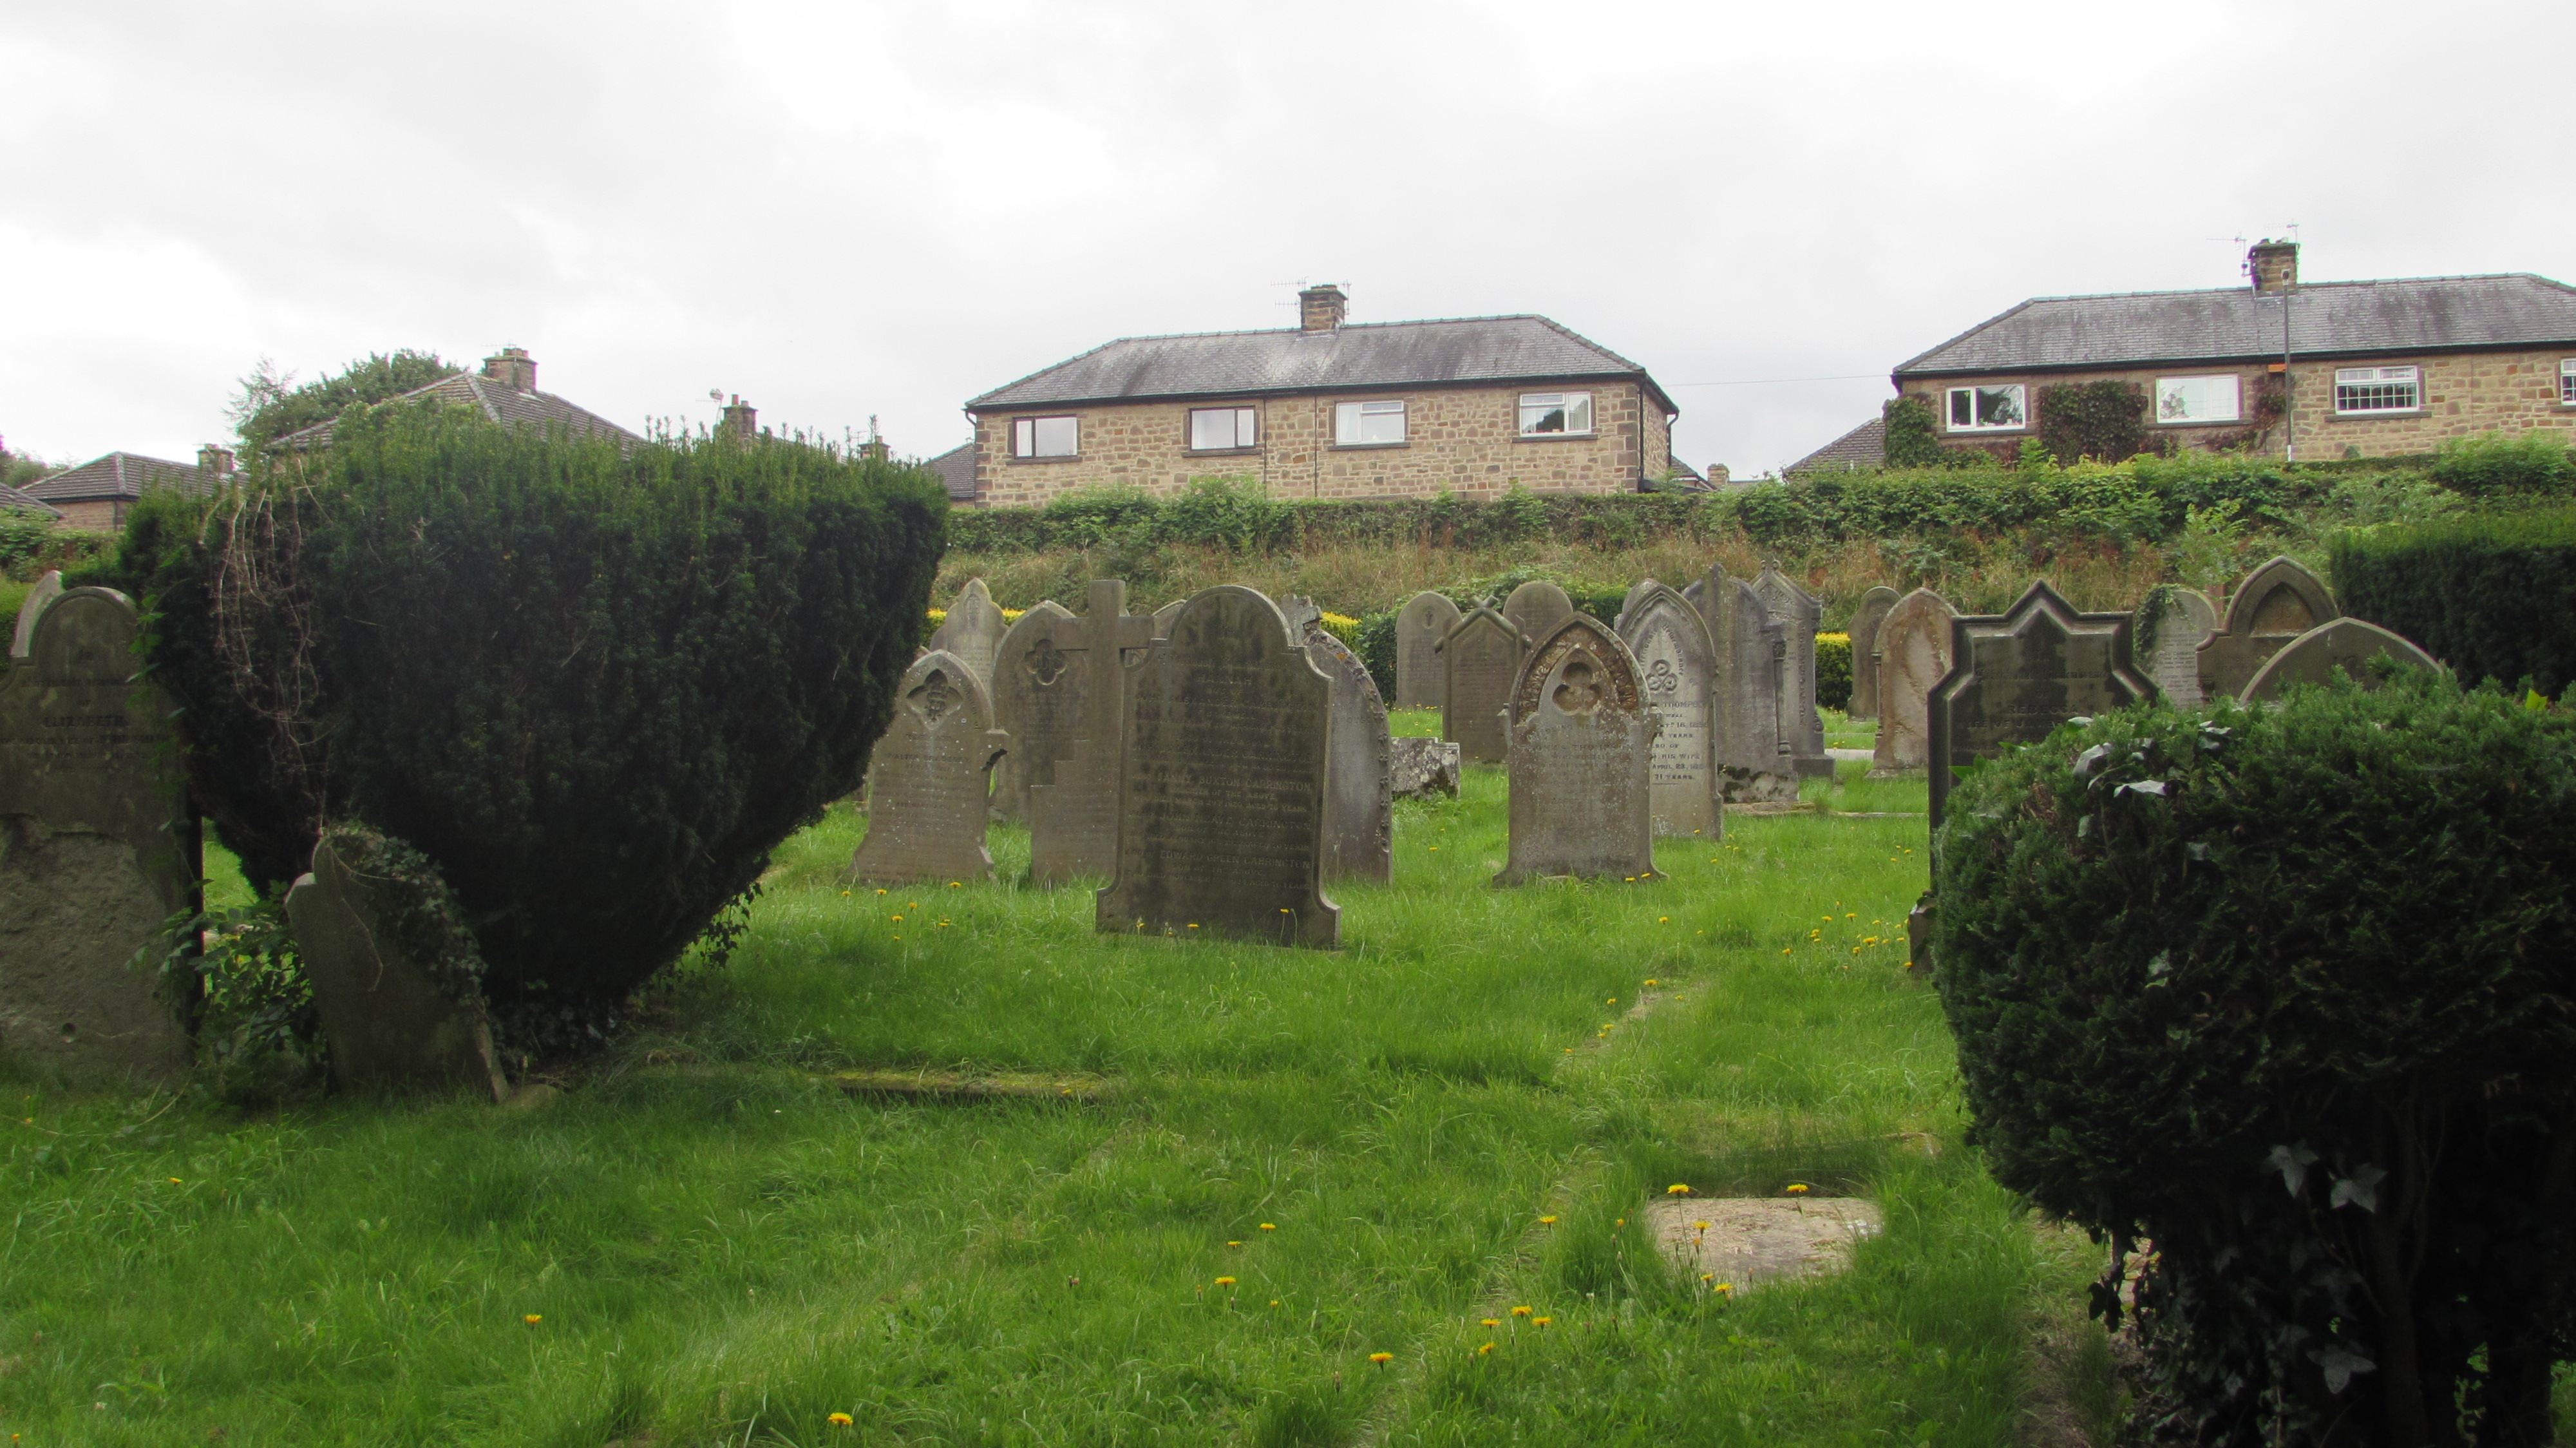 The Houses Over Looking The Cemetery